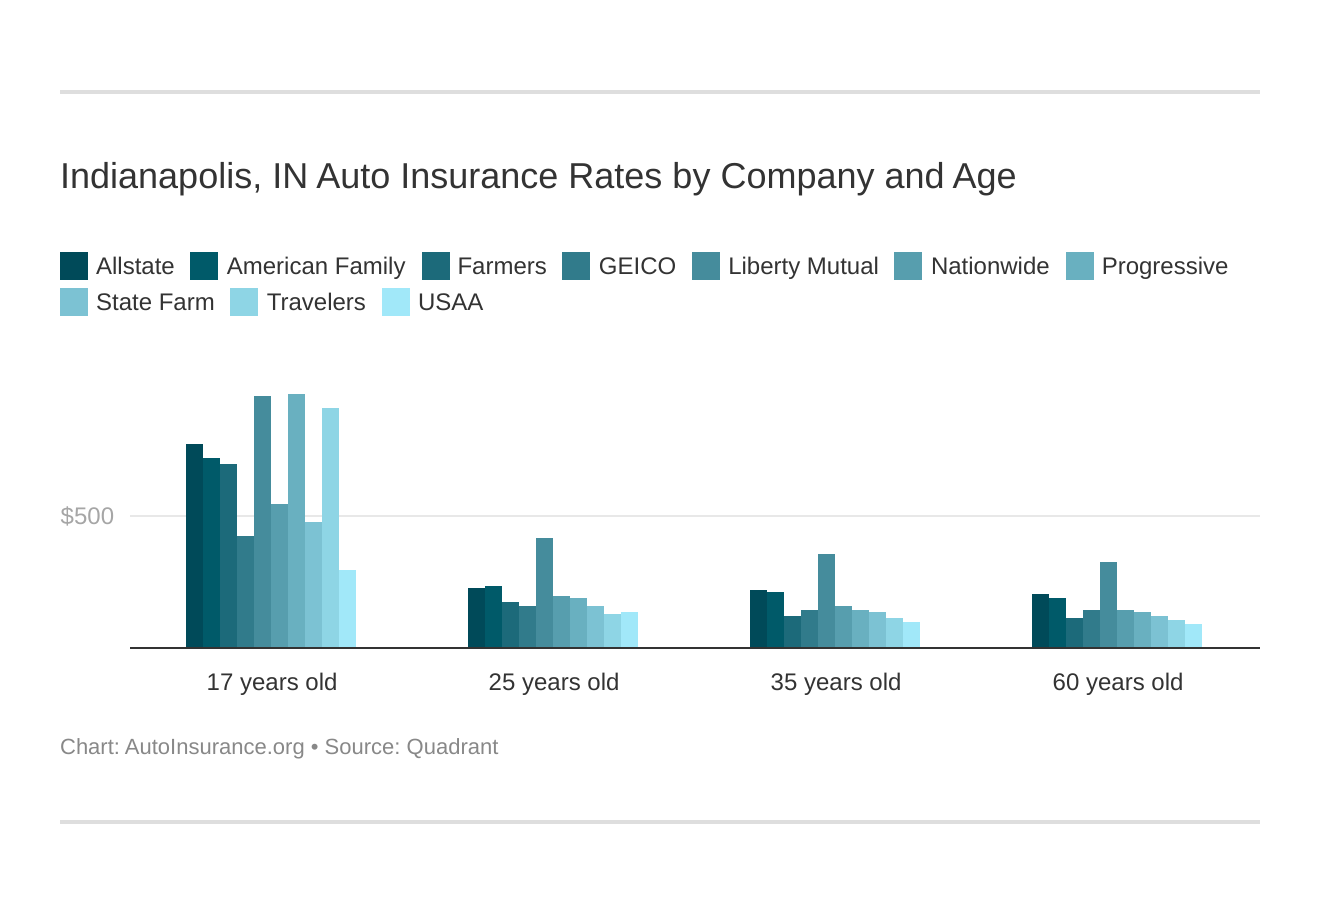 Indianapolis, IN Auto Insurance Rates by Company and Age